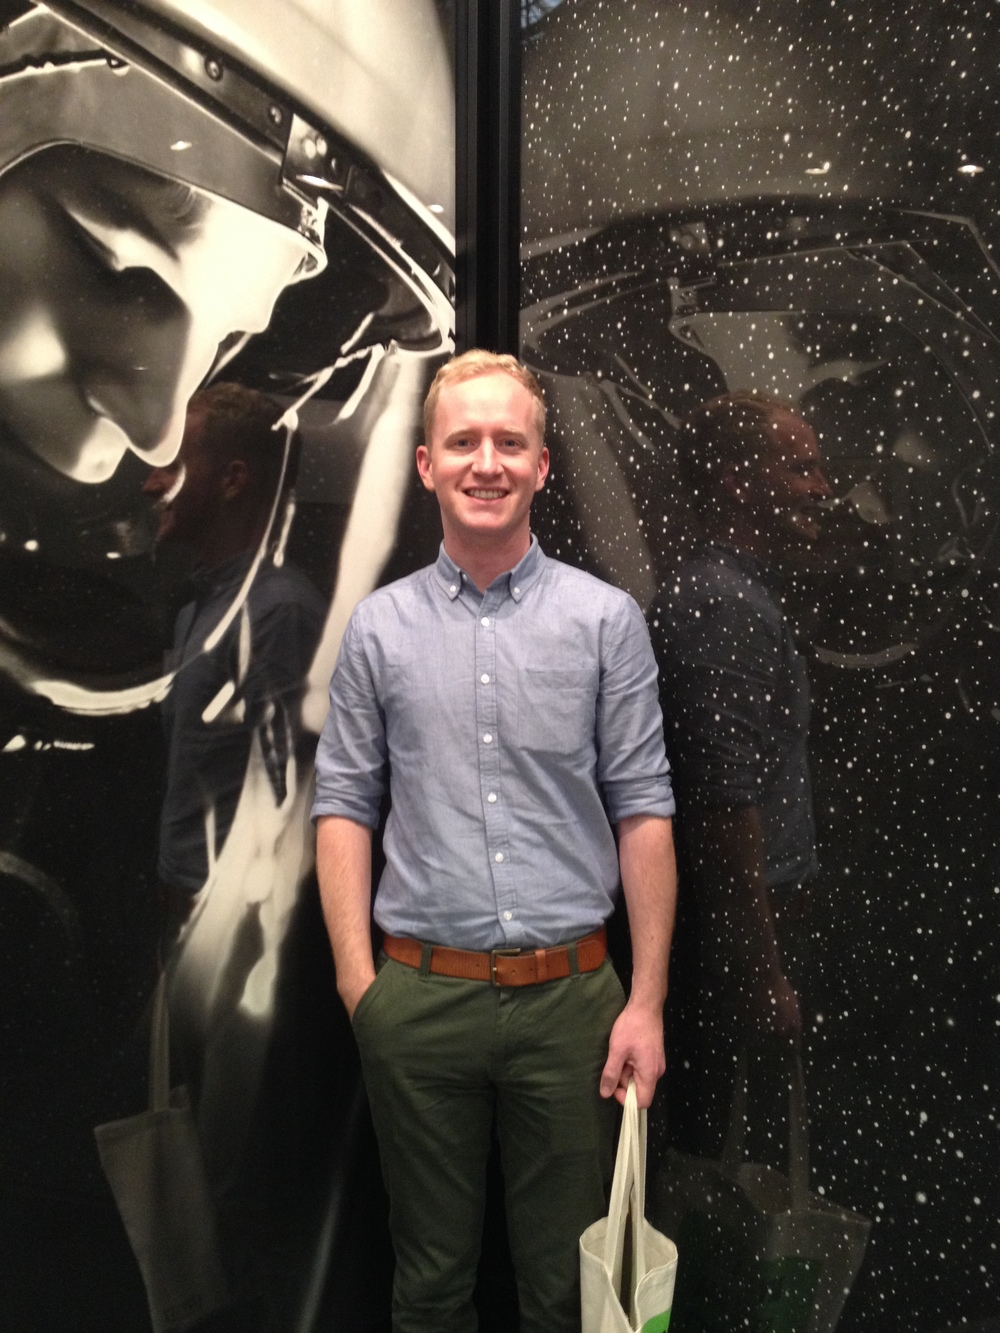 Here's Ben in front of some drawings by Robert Longo in the same exhibit